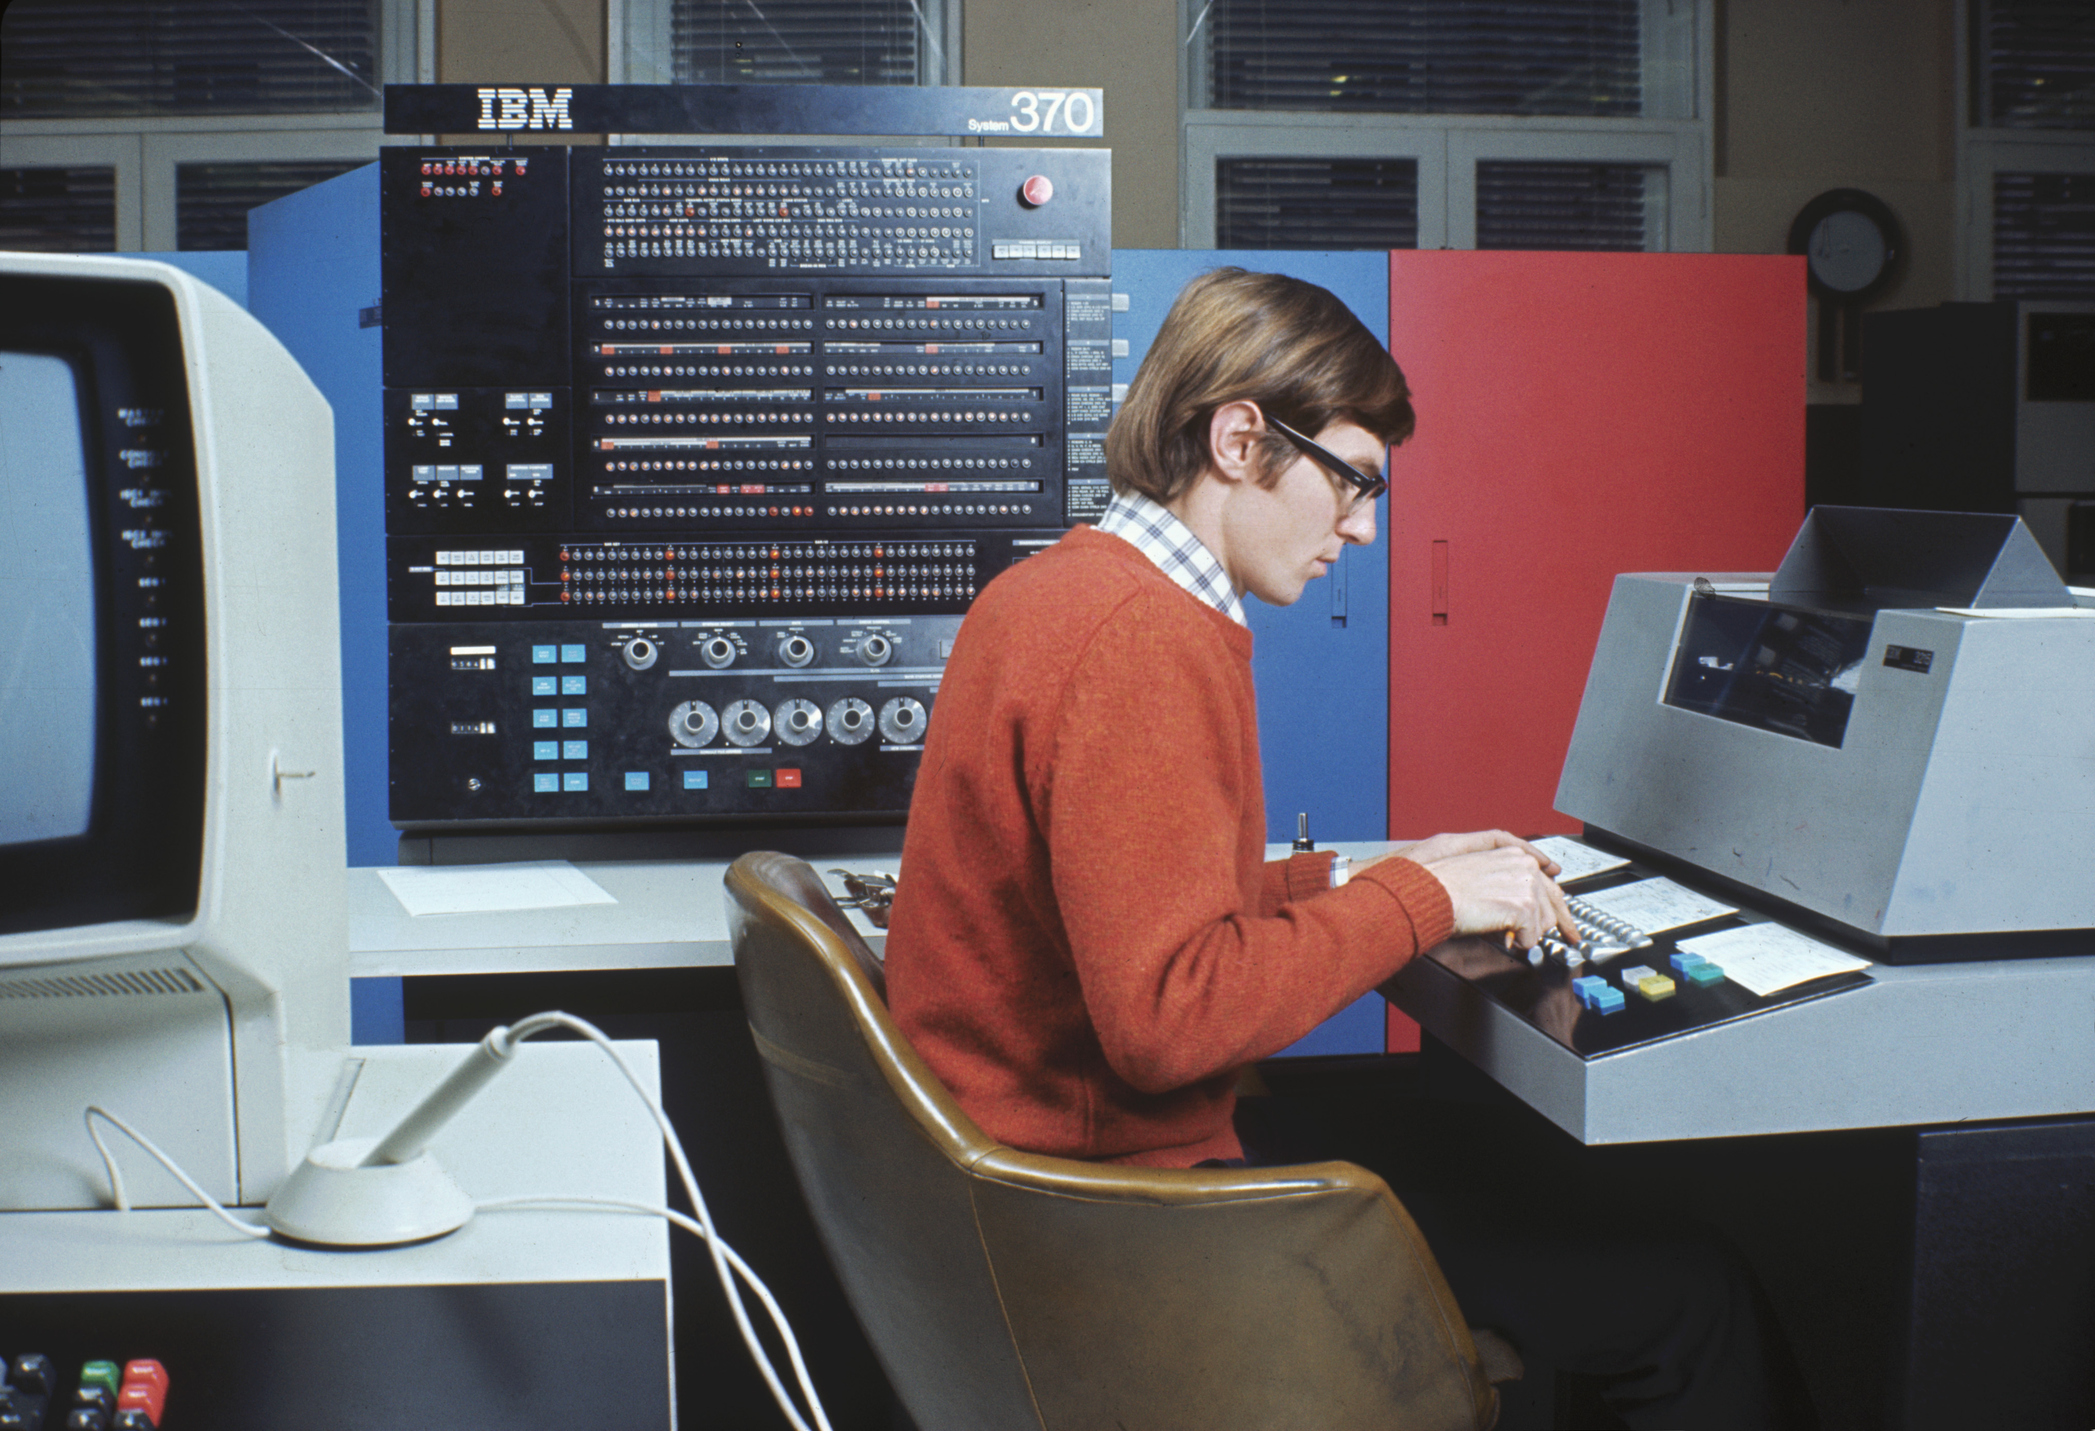 These guidelines are up to date like this IBM System/370 mainframe computer.